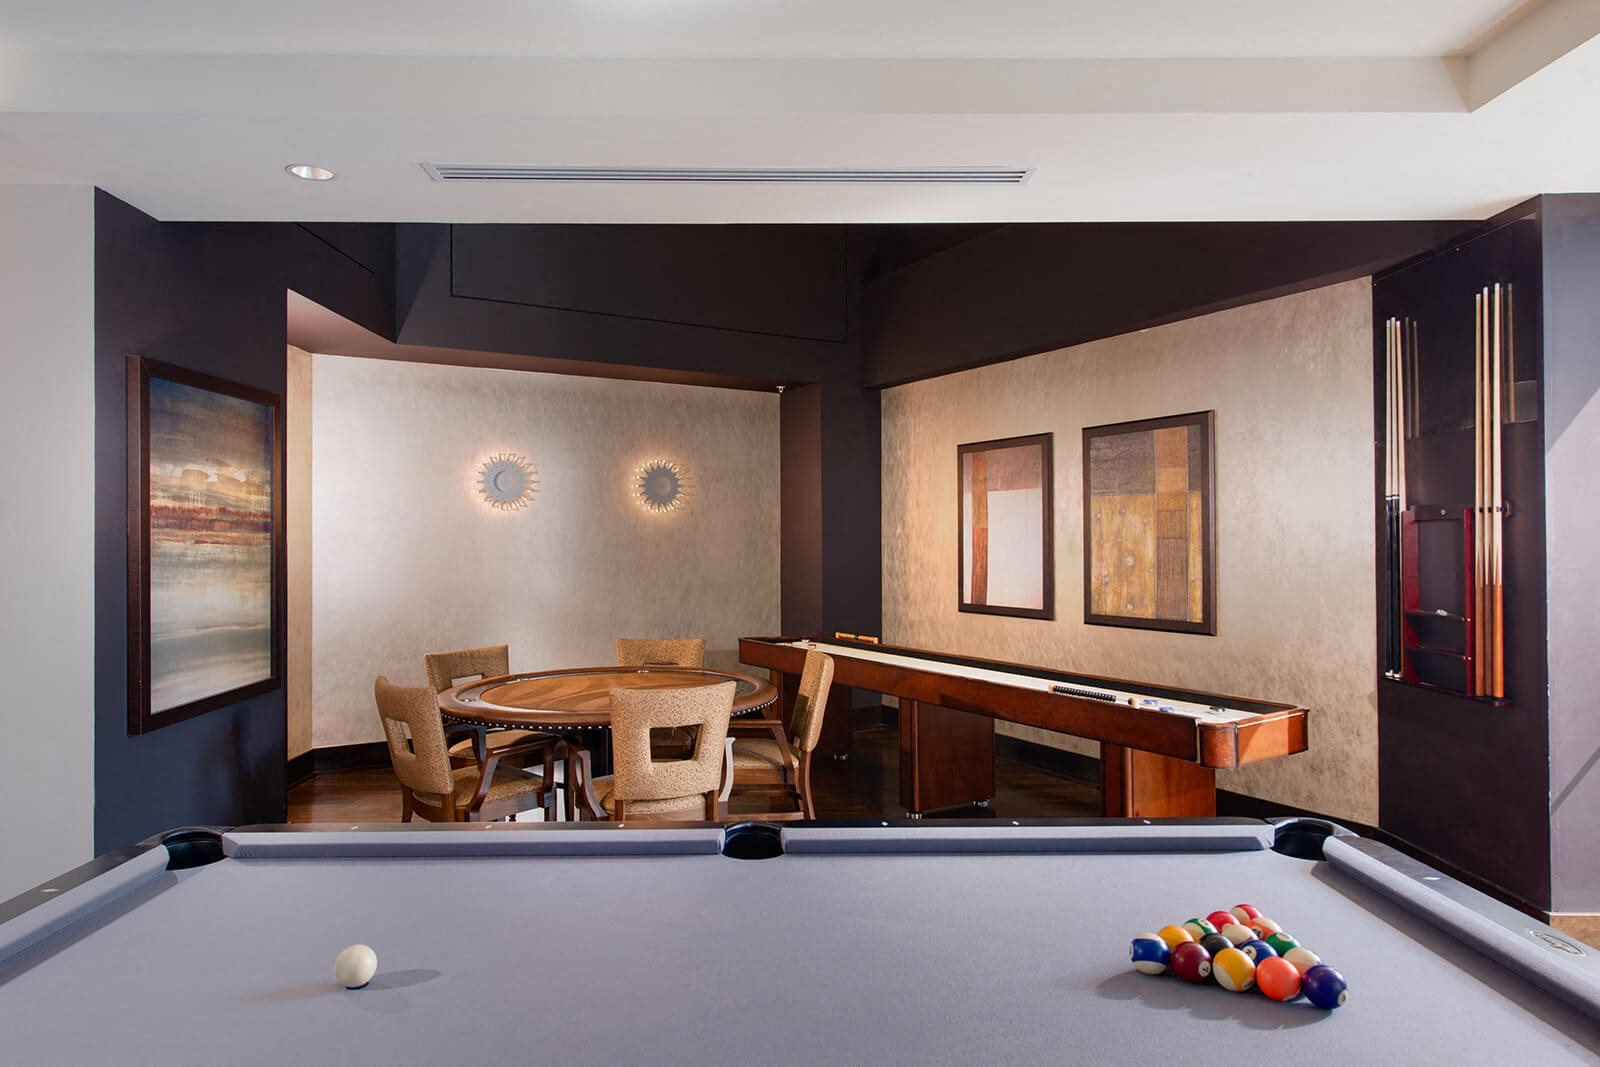 Billiards Table, Poker Table, and Shuffle Board In Clubroom at The Ridgewood by Windsor, Virginia, 22030